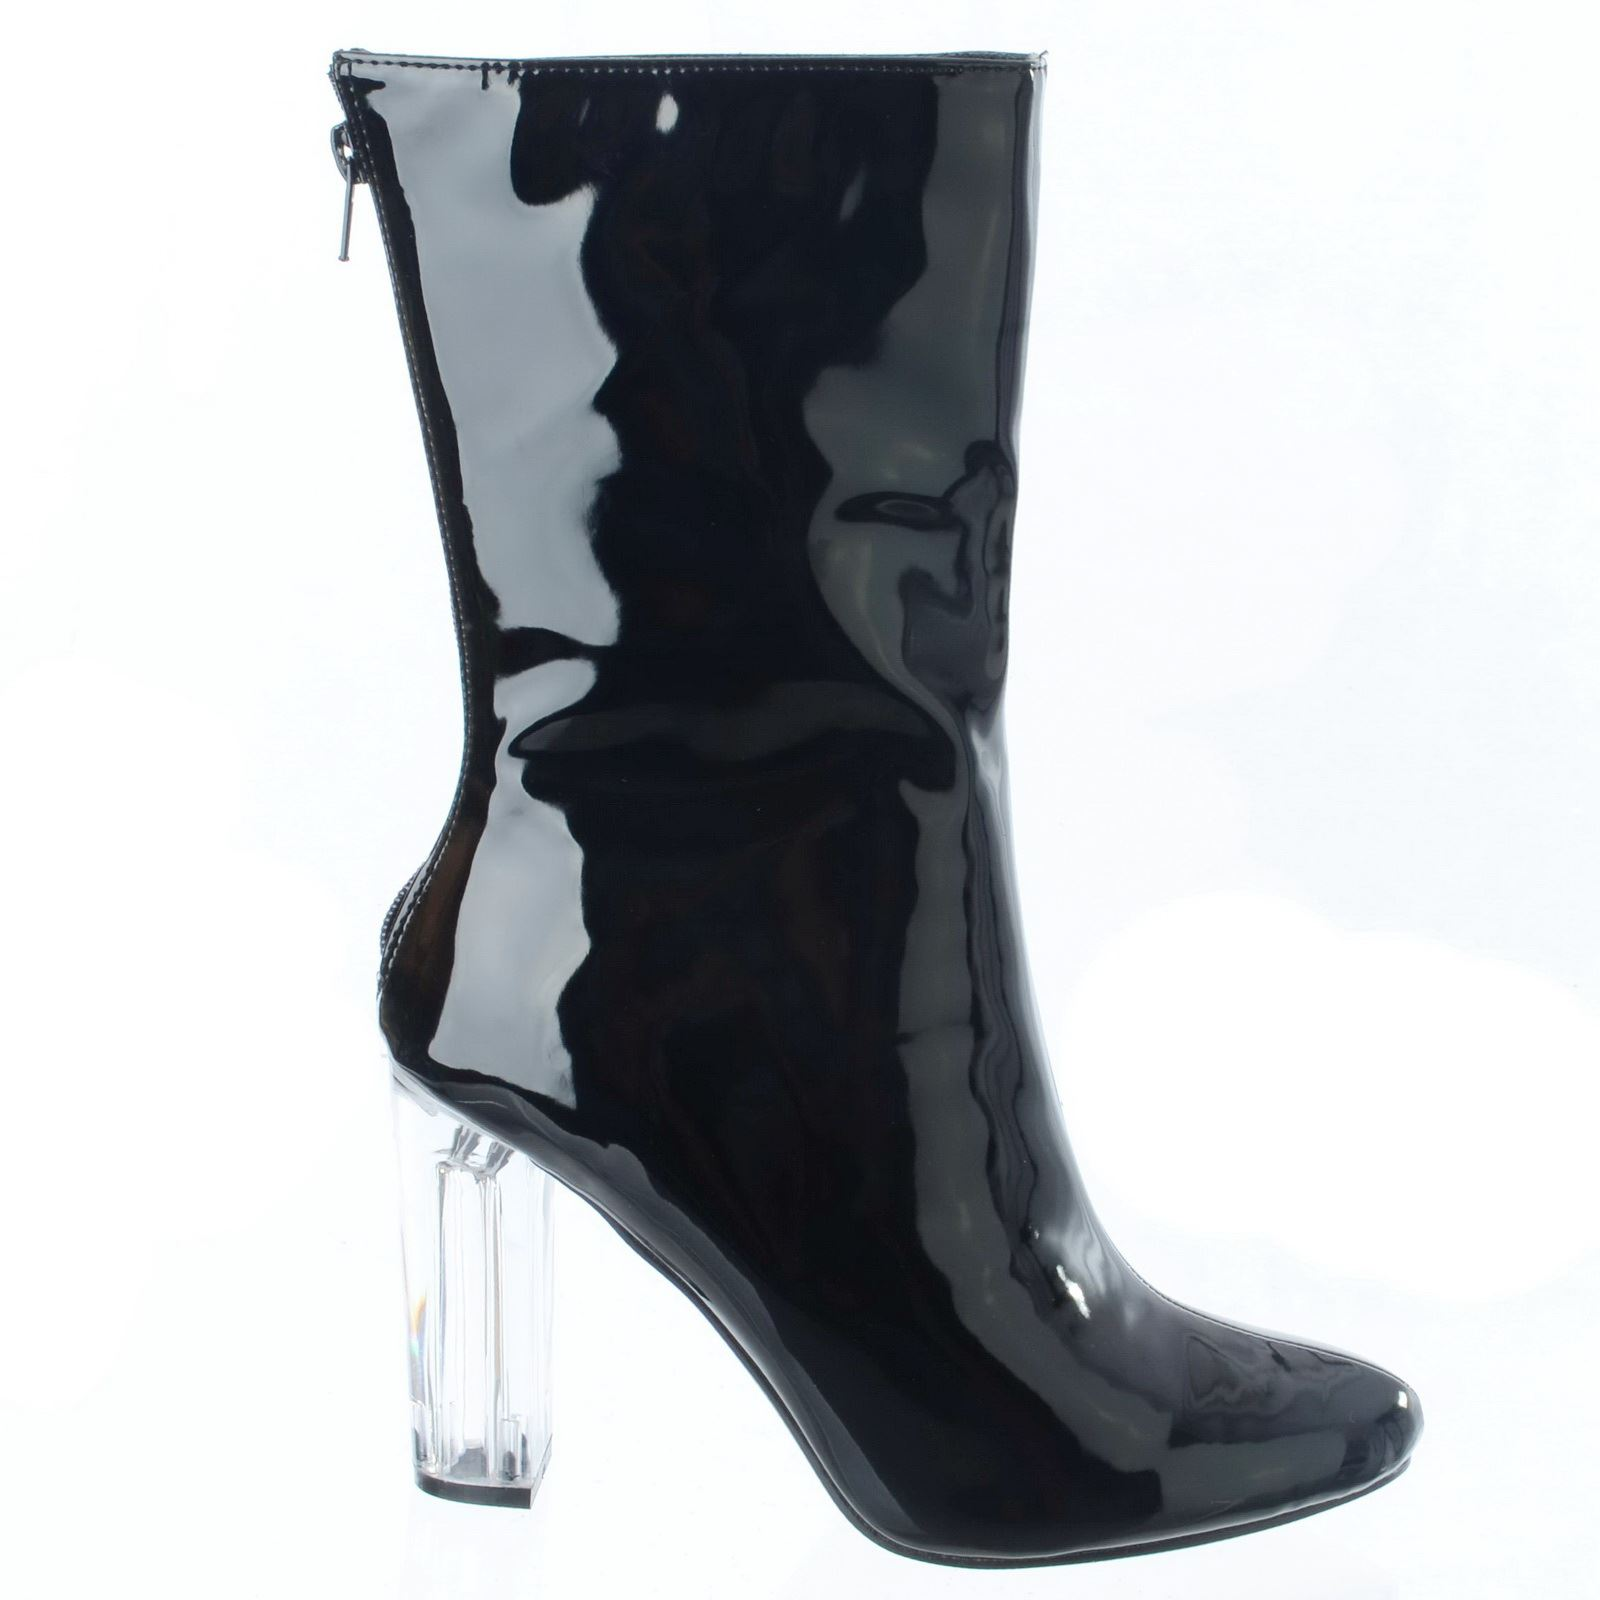 NEW WOMENS LADIES HIGH PERSPEX HEEL ANKLE ZIP UP FASHION PATENT BOOTS SHOES SIZE